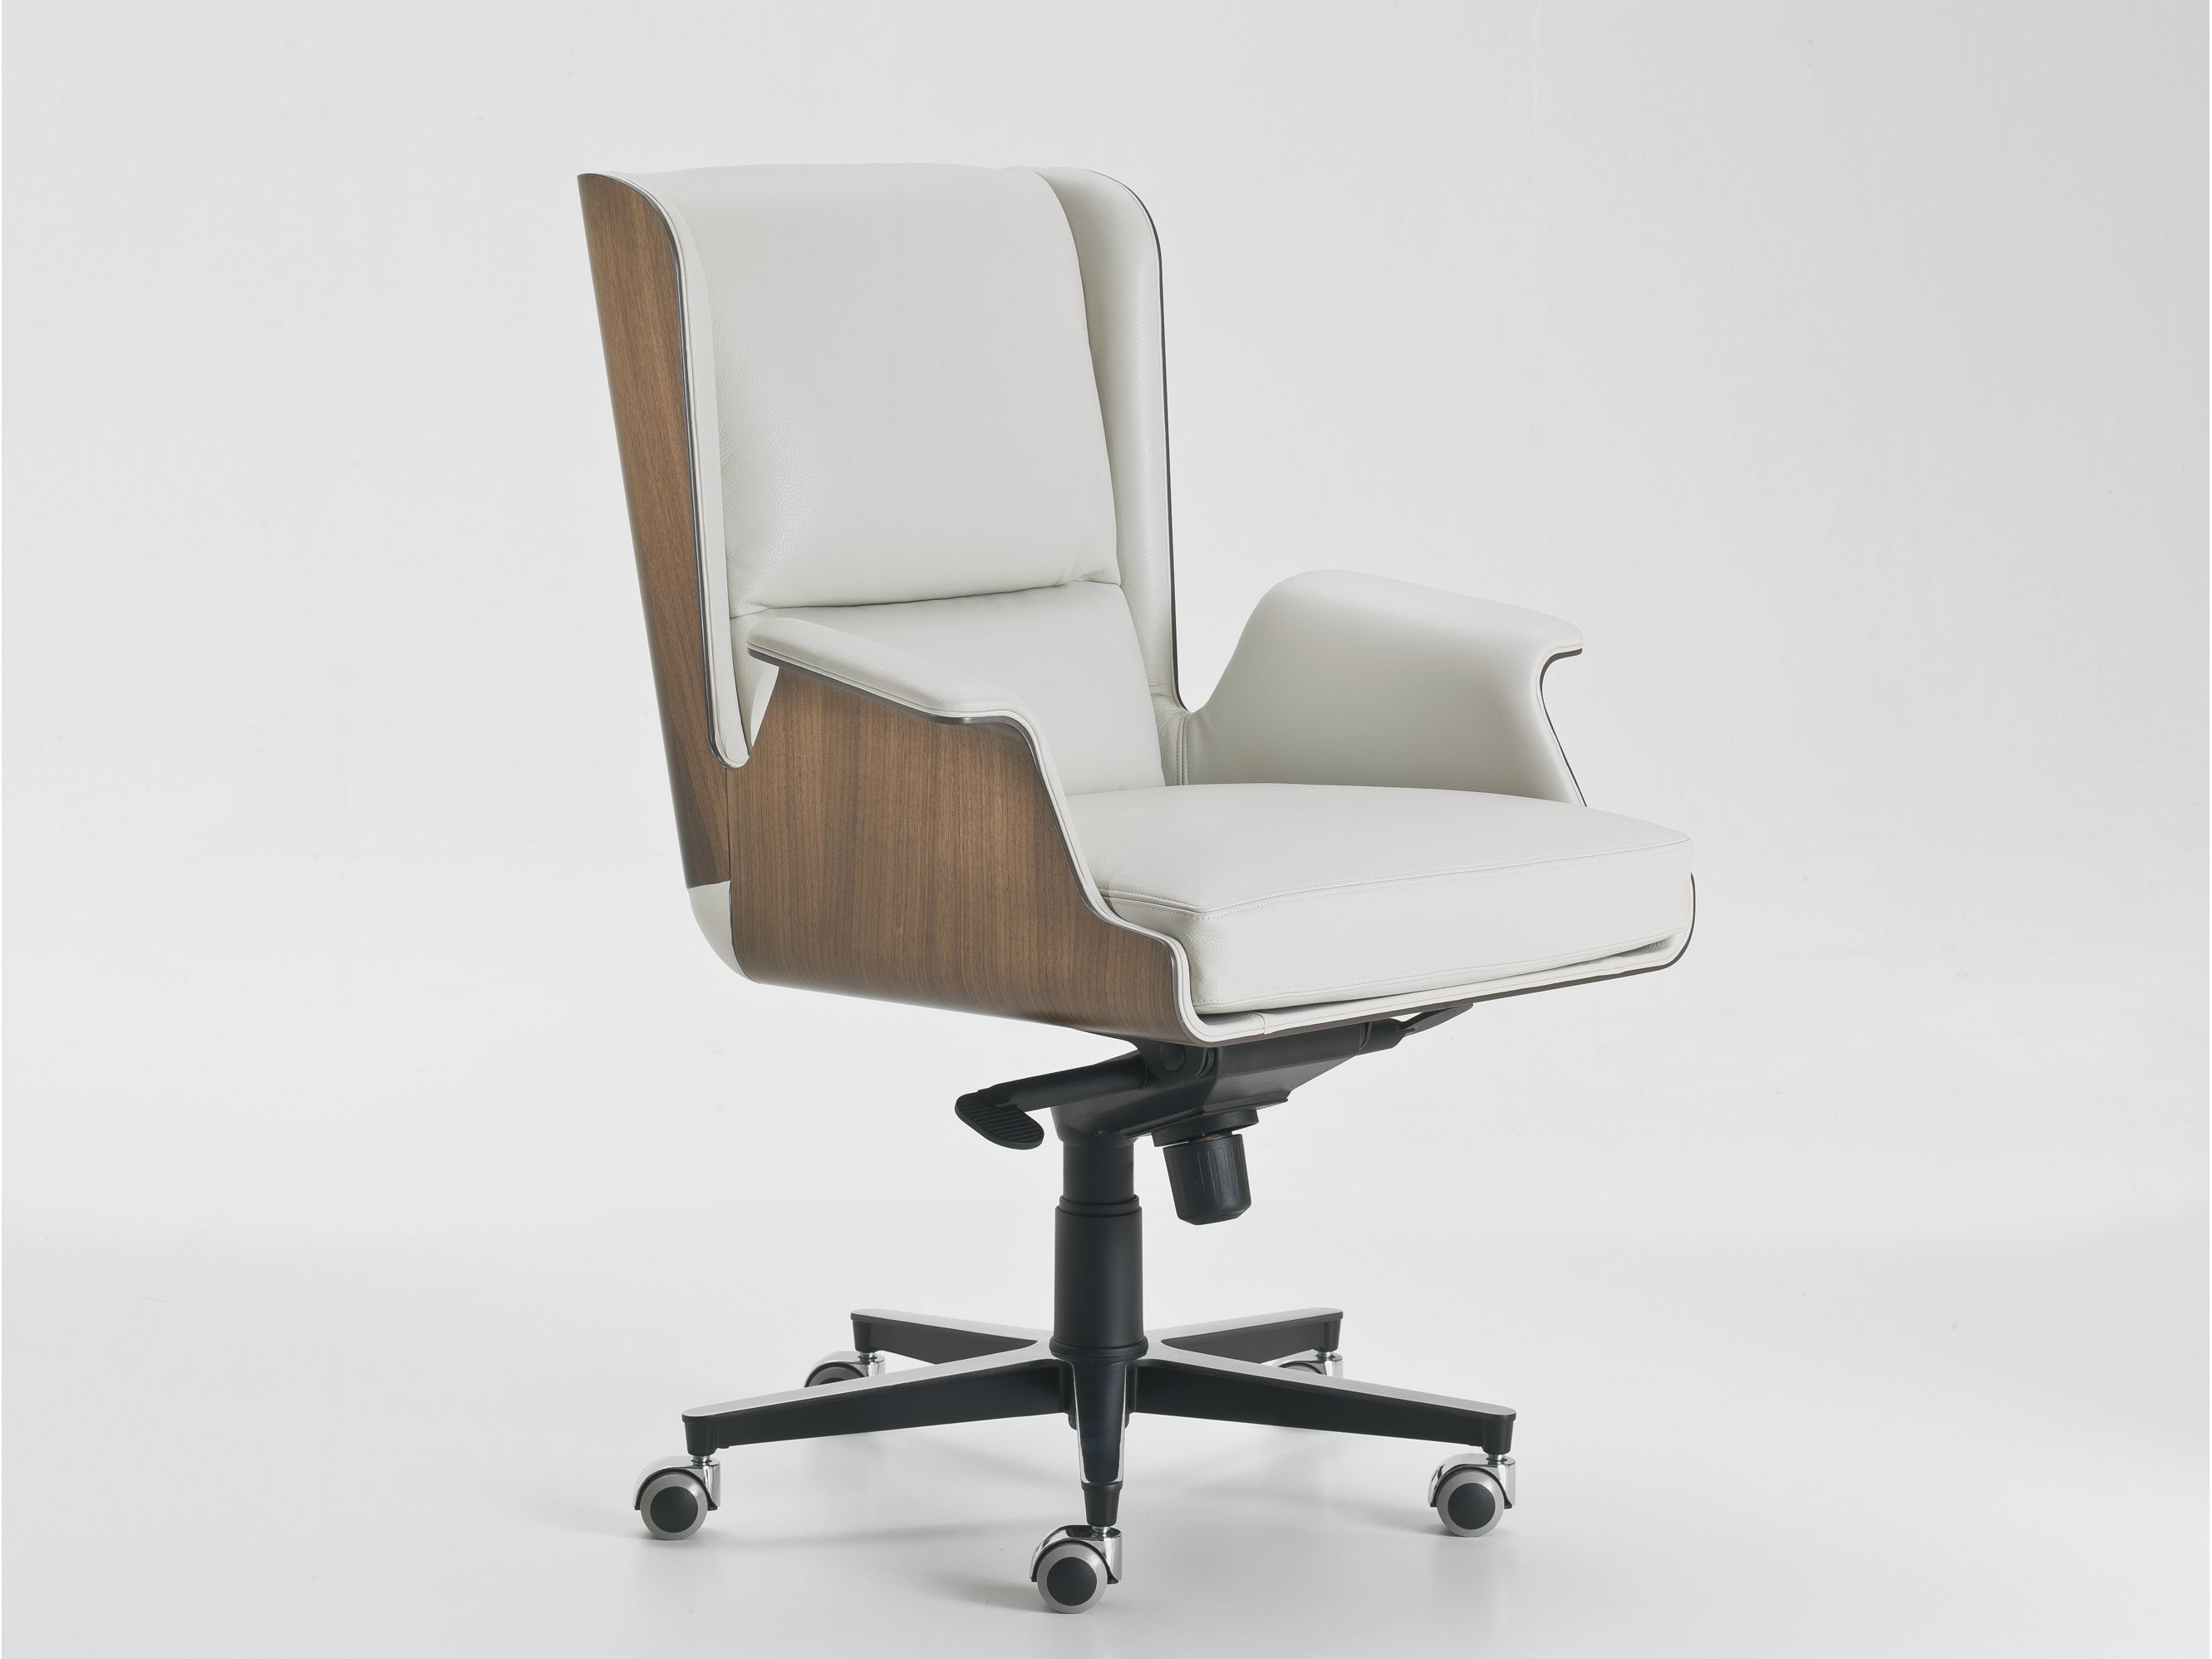 GARBO Executive chair by i 4 Mariani design Umberto Asnago